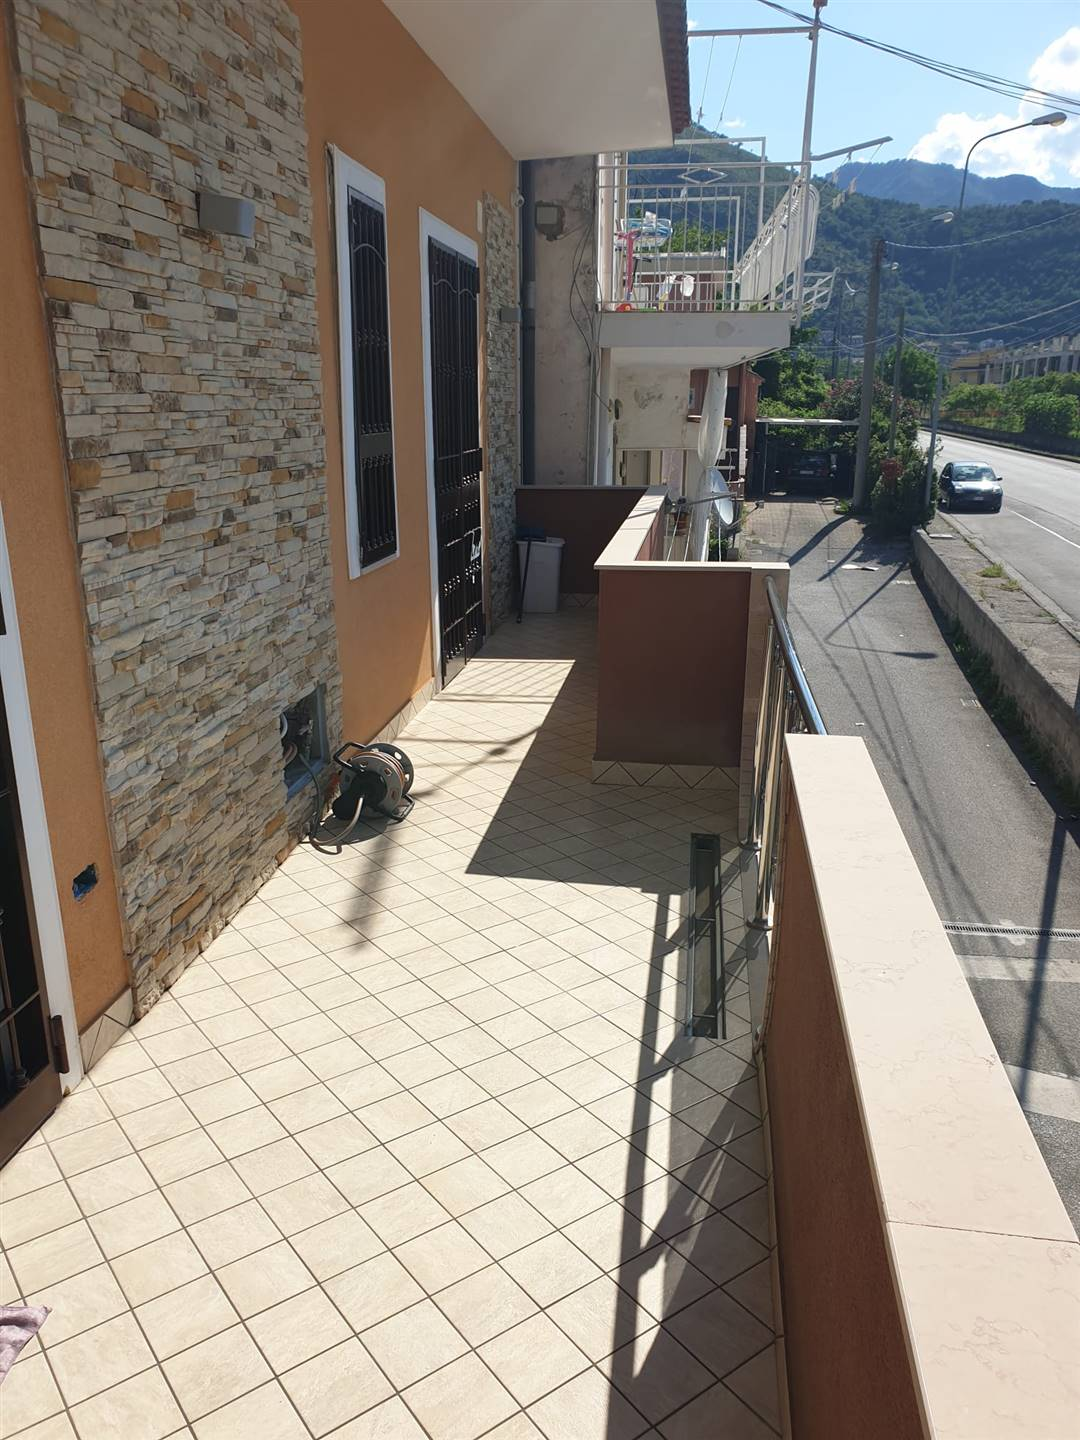 PECORARI, NOCERA SUPERIORE, Apartment for rent of 90 Sq. mt., Excellent Condition, Heating Individual heating system, Energetic class: G, placed at